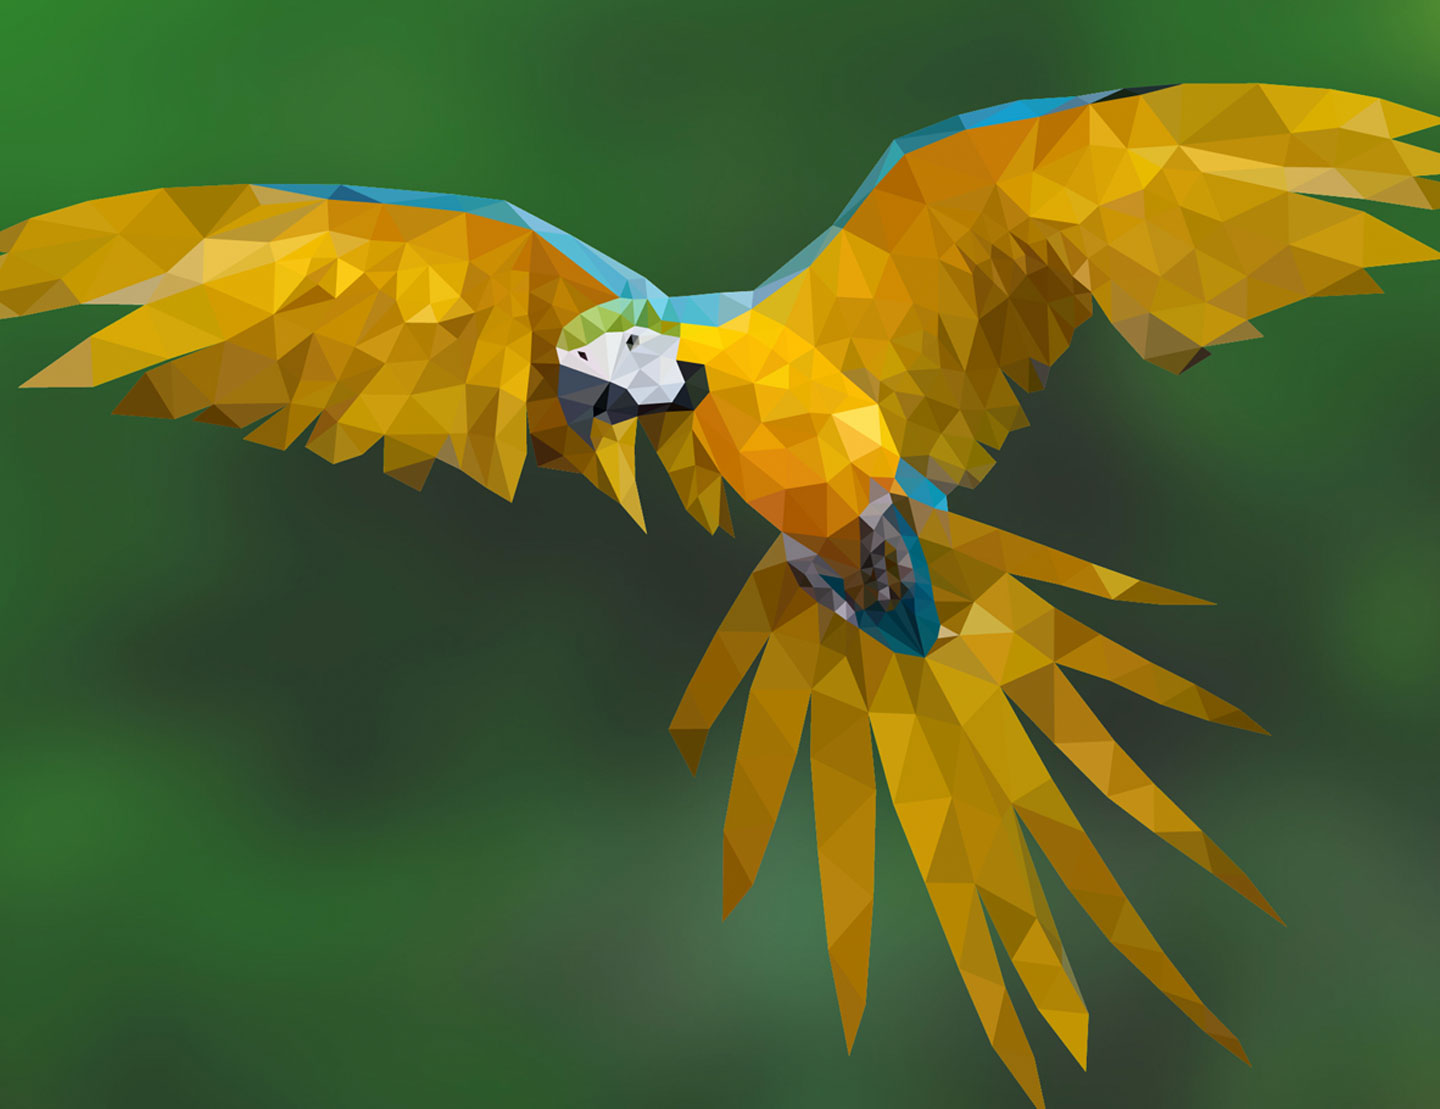 Low_Poly_Parrot_01 by Kevin Lems